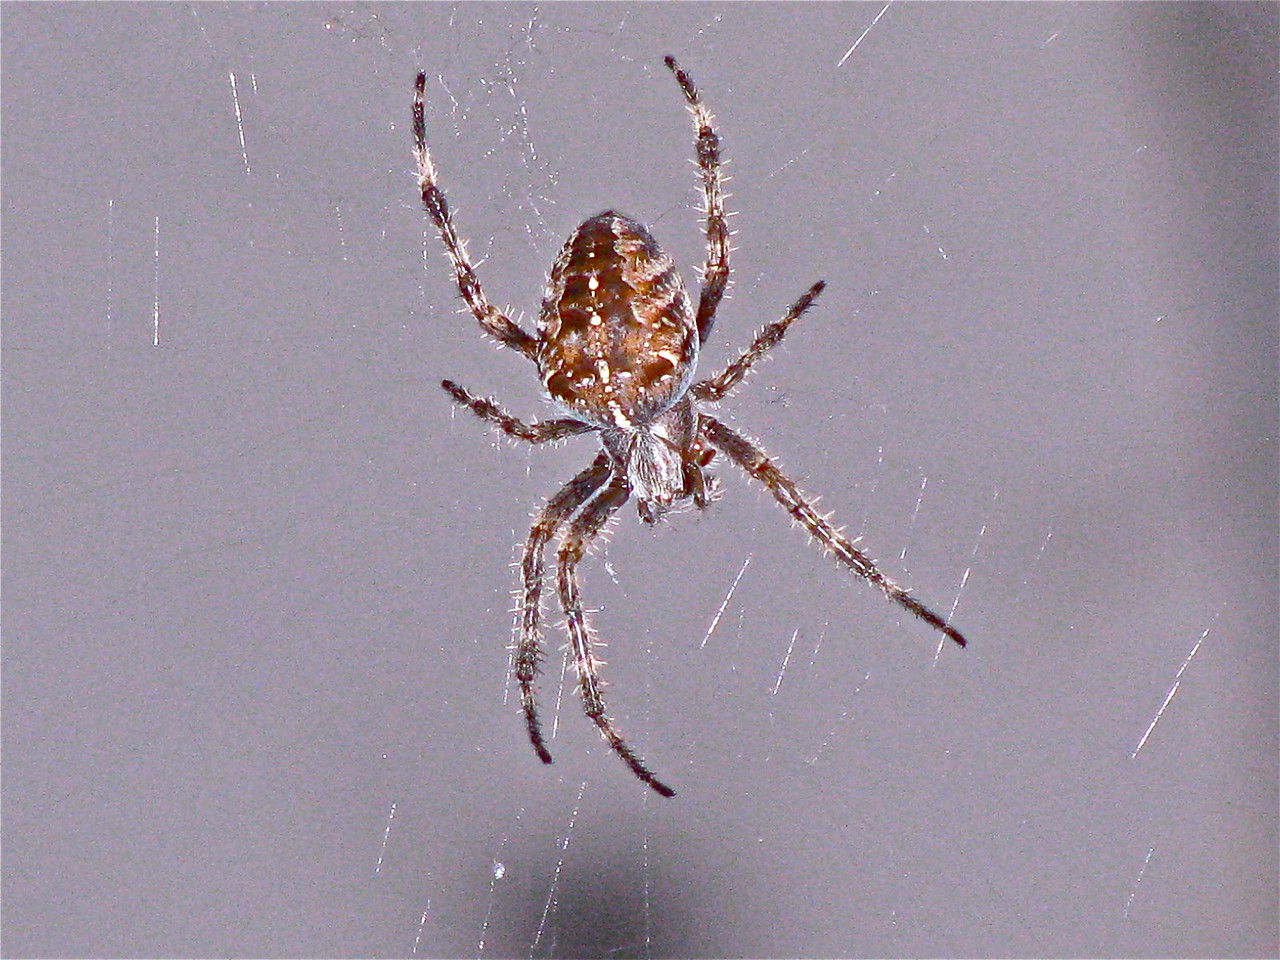 The vast majority of spiders are harmless. Beneficial in our gardens and vineyards, they feed on and control pest insects.